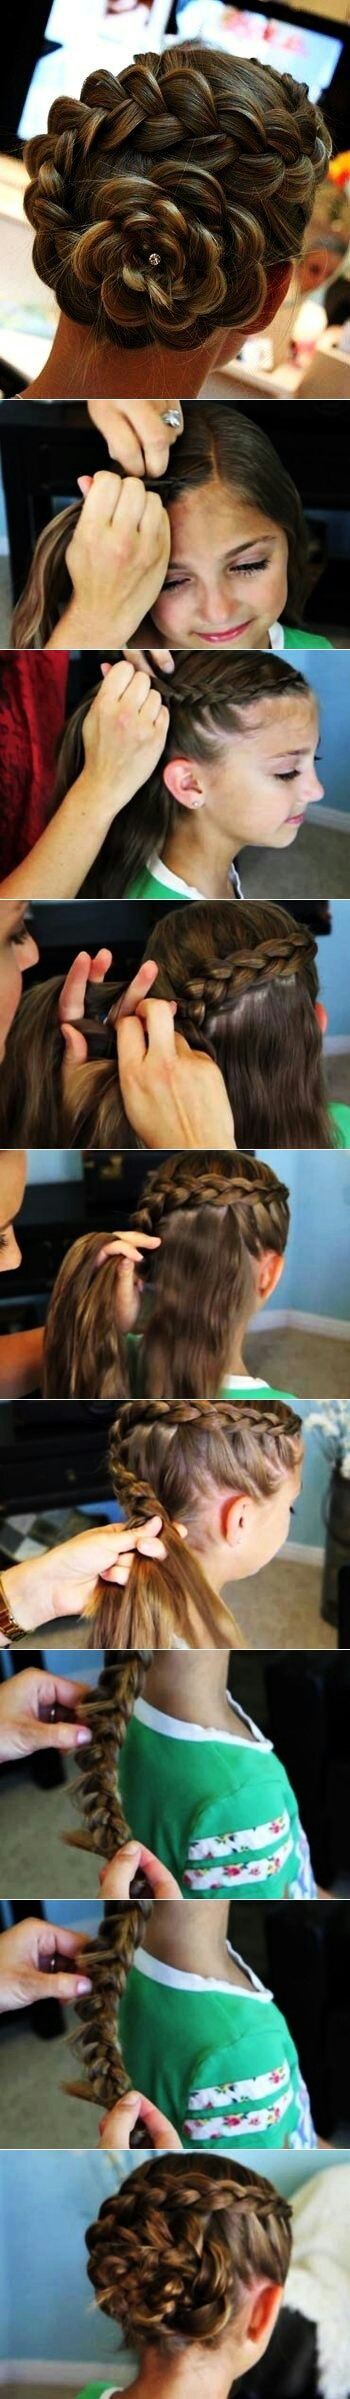 Boy hairstyle simple pic love this hair  frisur  pinterest  hair style makeup and girl hair